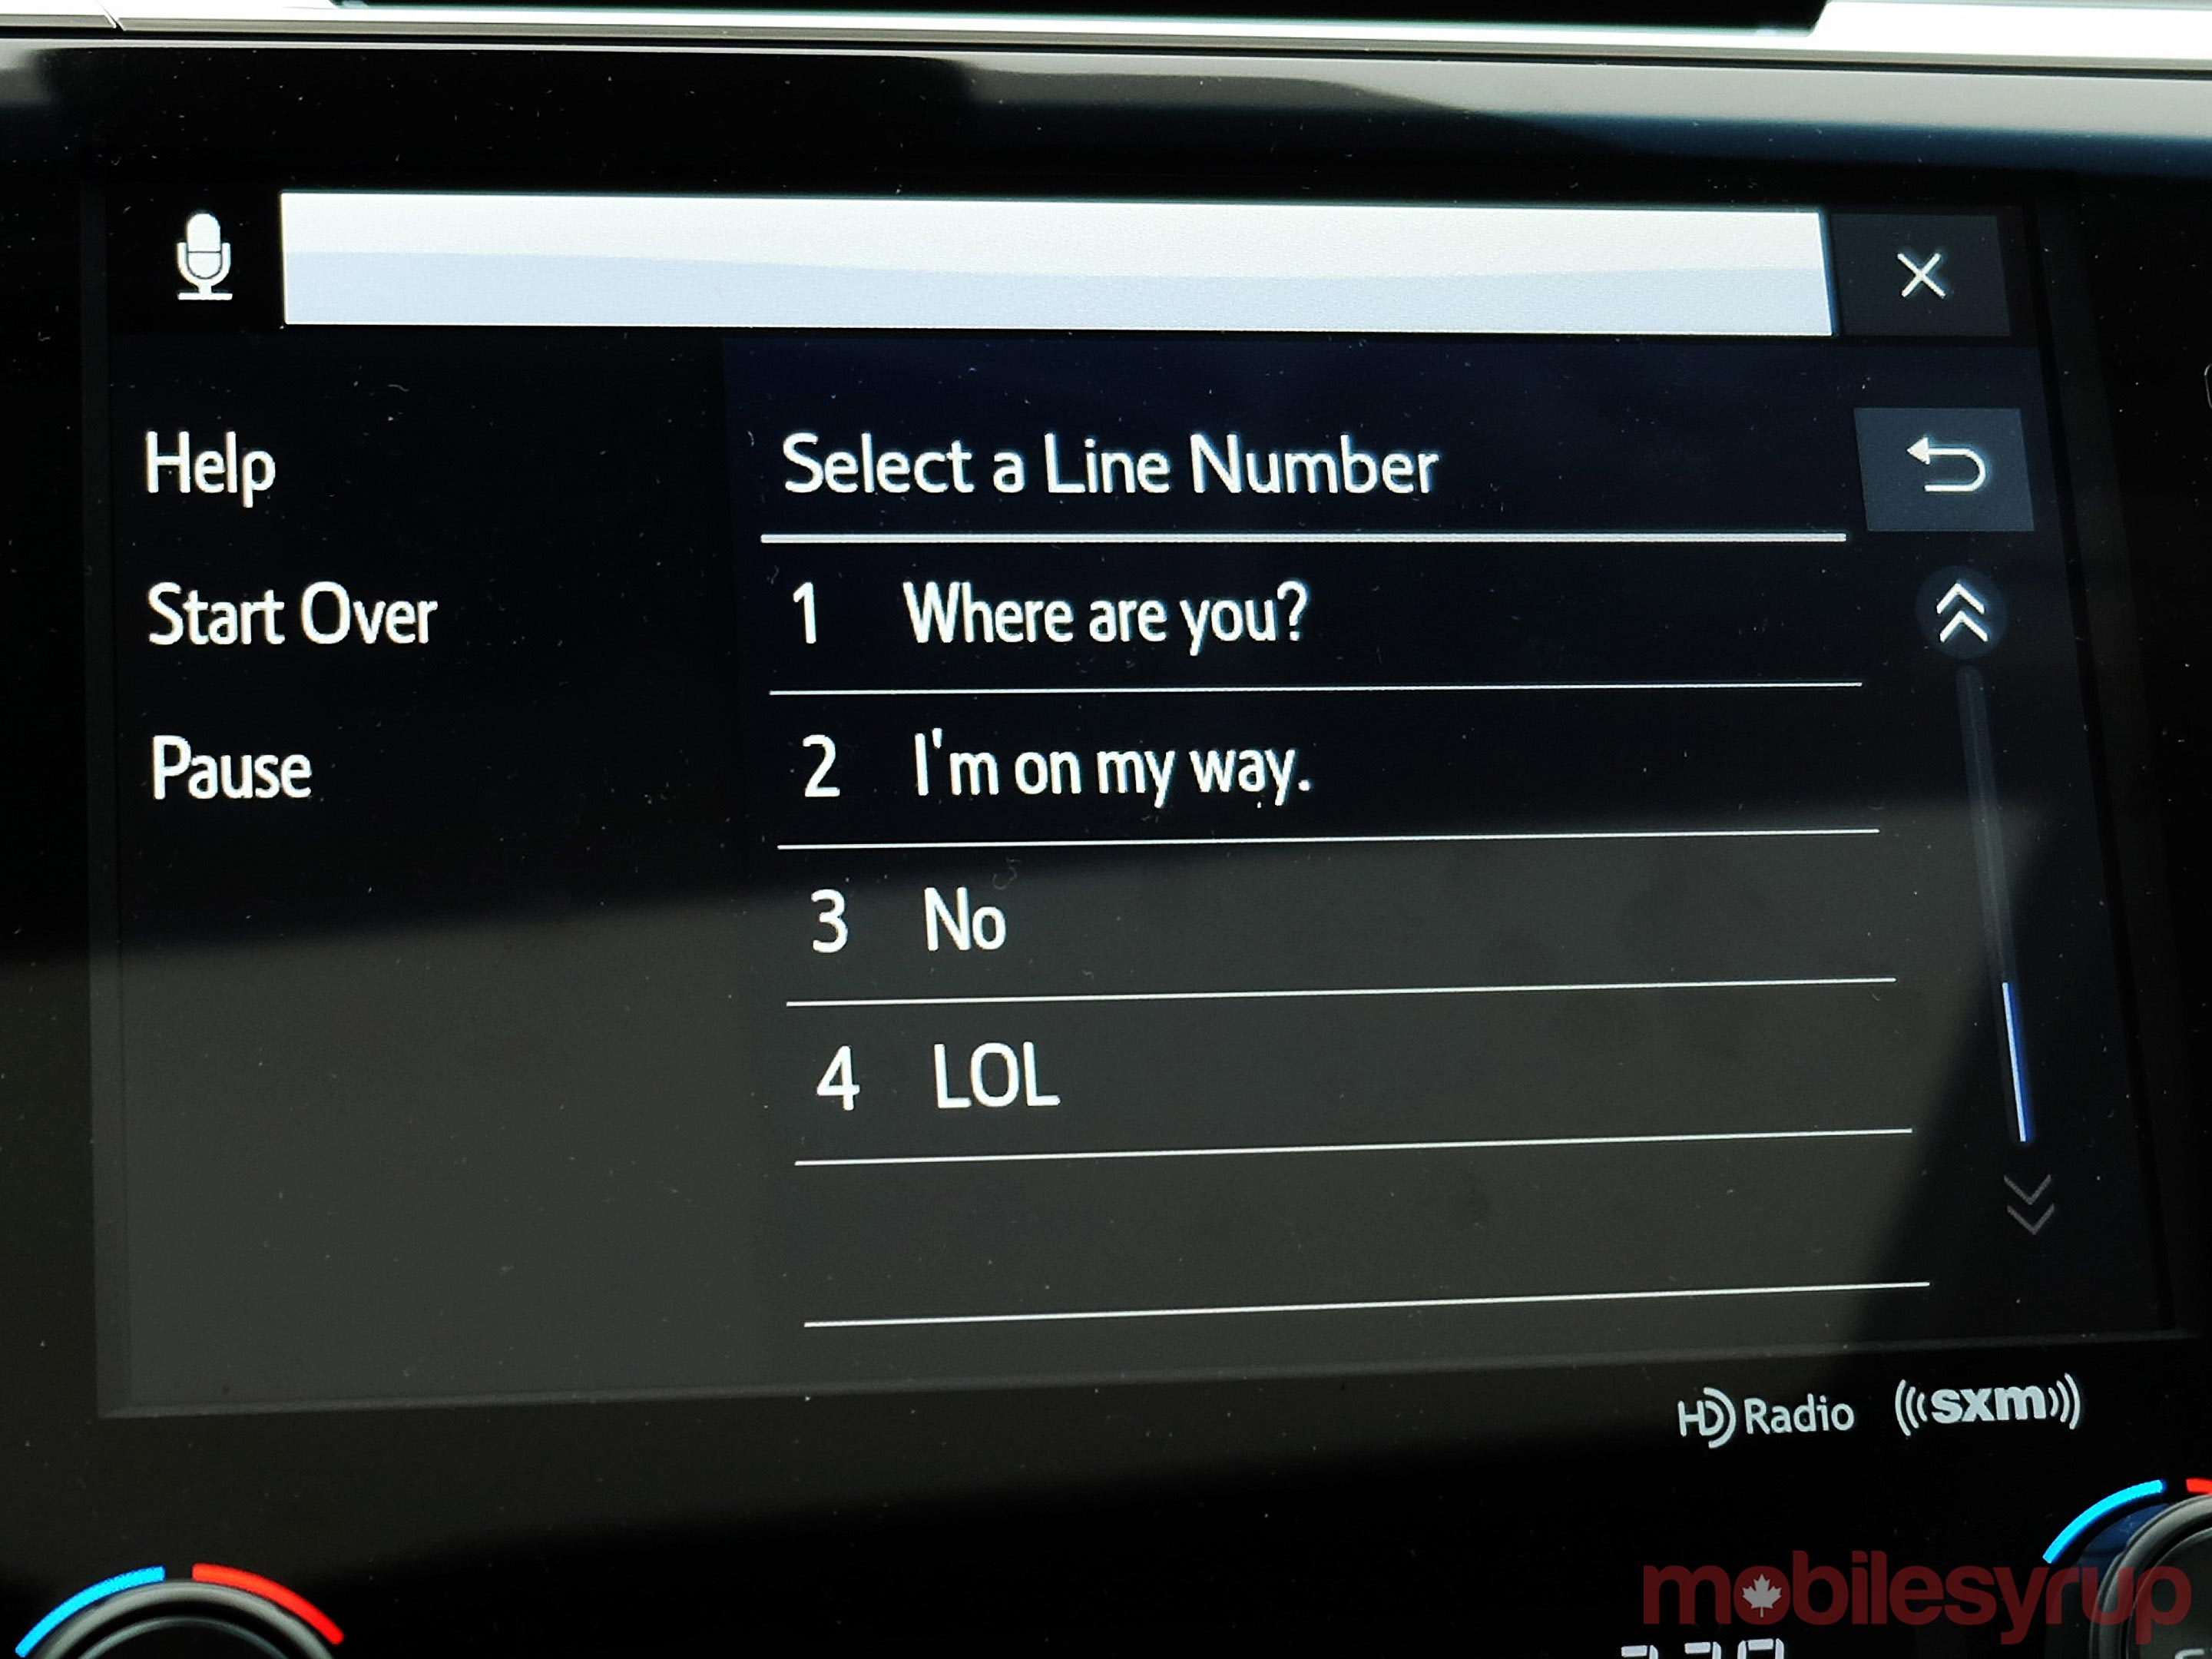 Toyota texting screen